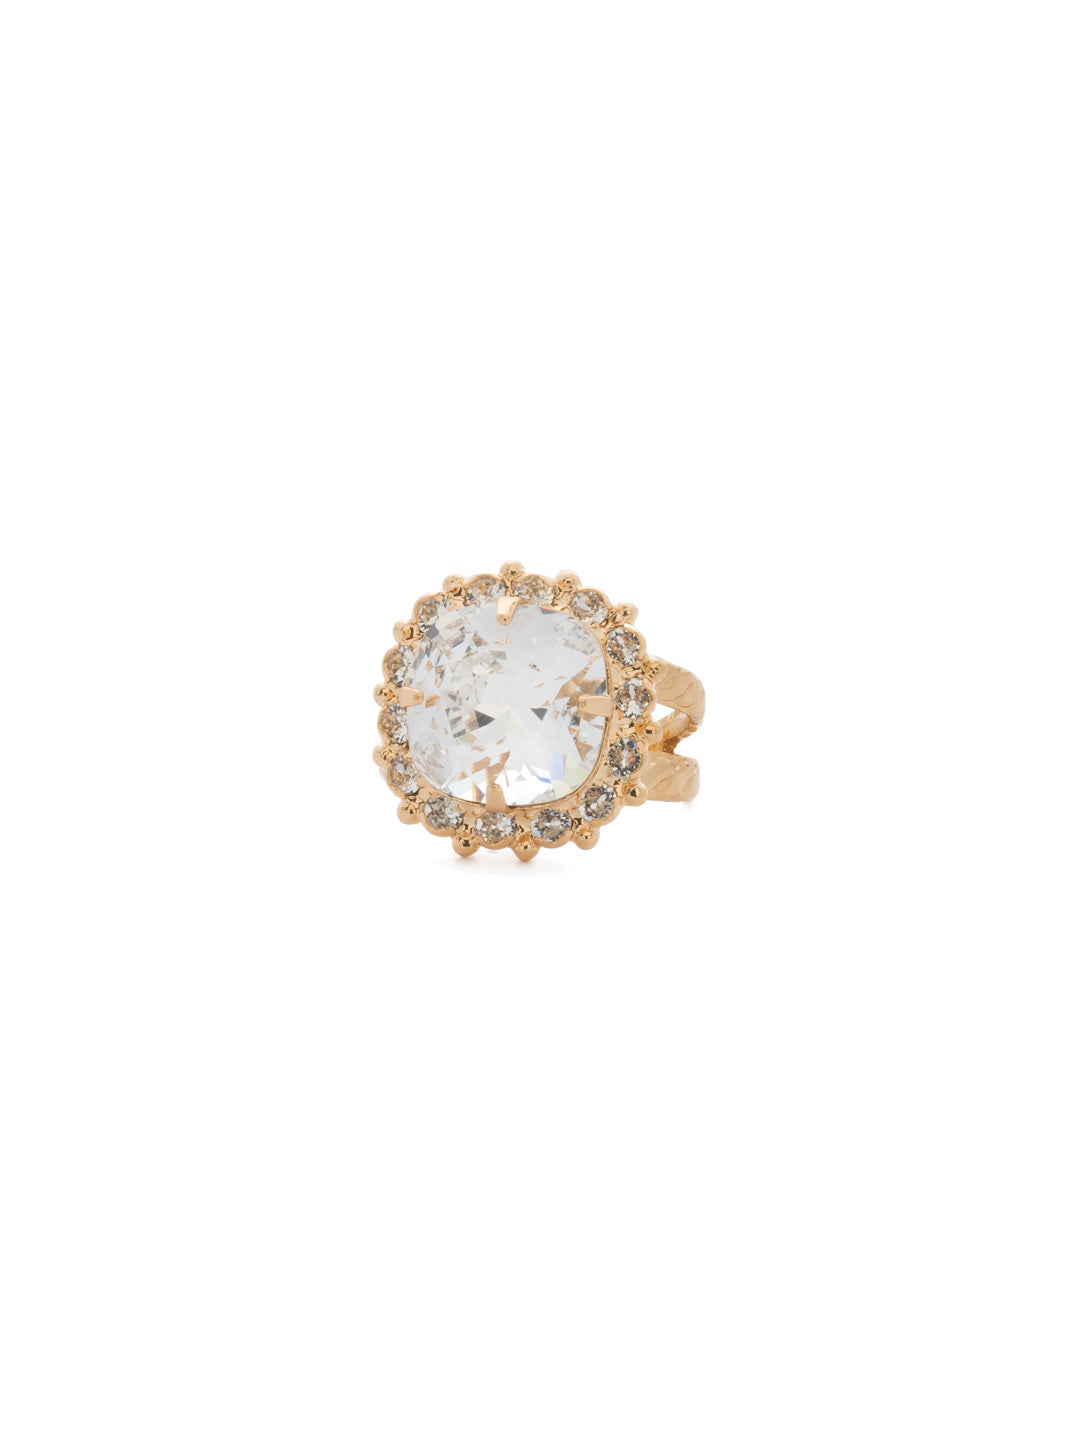 Cushion-Cut Cocktail Ring - RCR112BGCRY